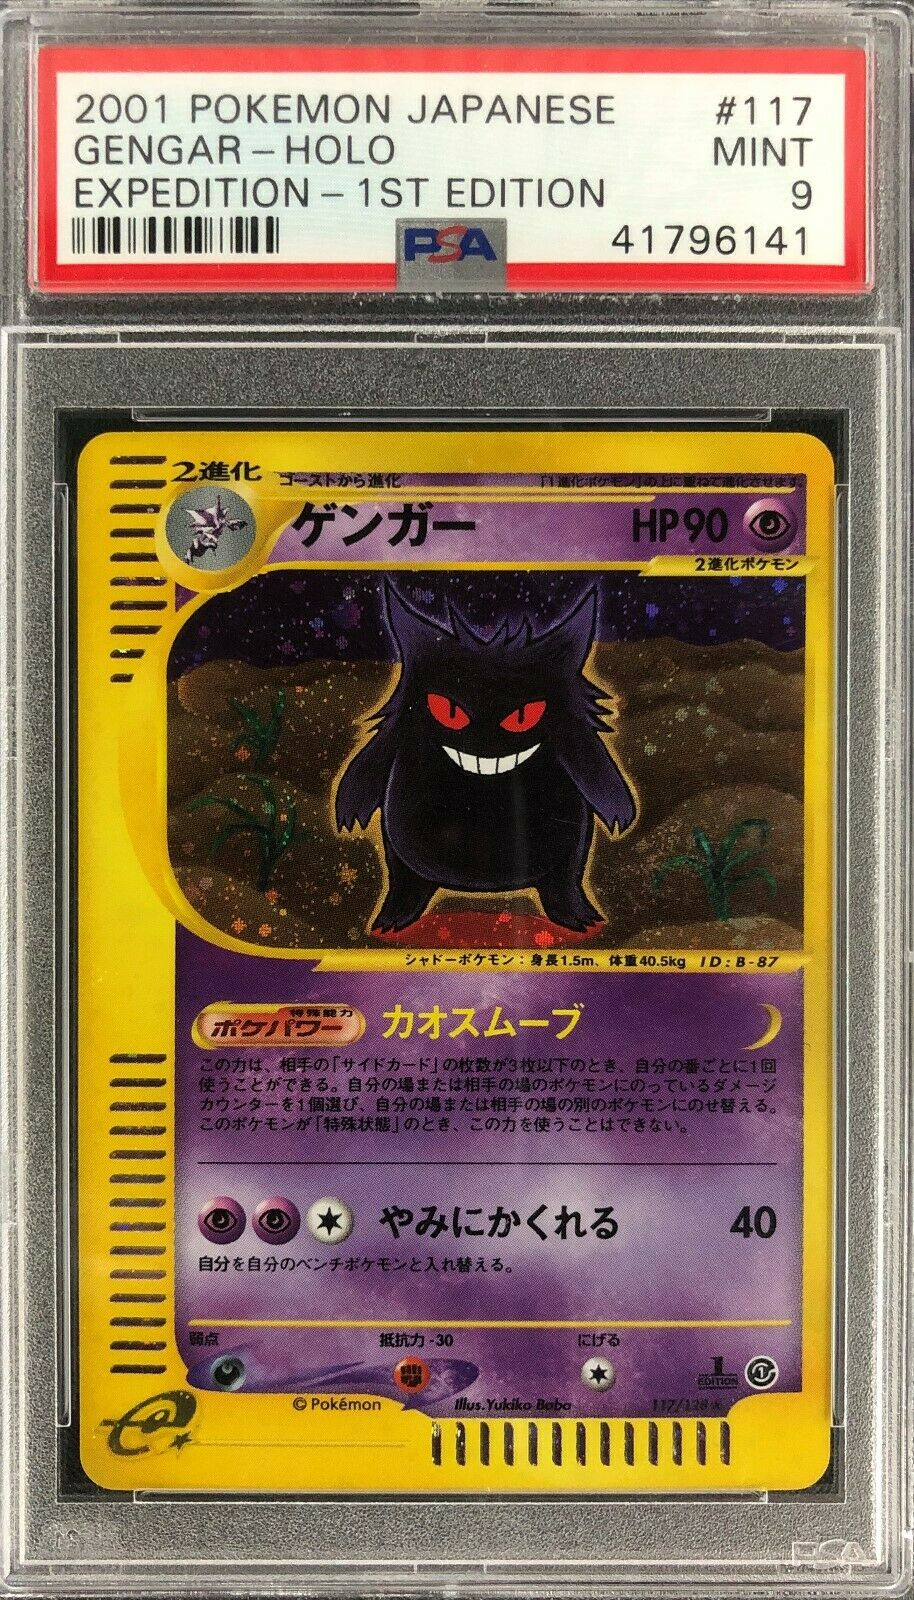 1st Edition Gengar Expedition Holo Shiny Pokemon Card Mint PSA 9